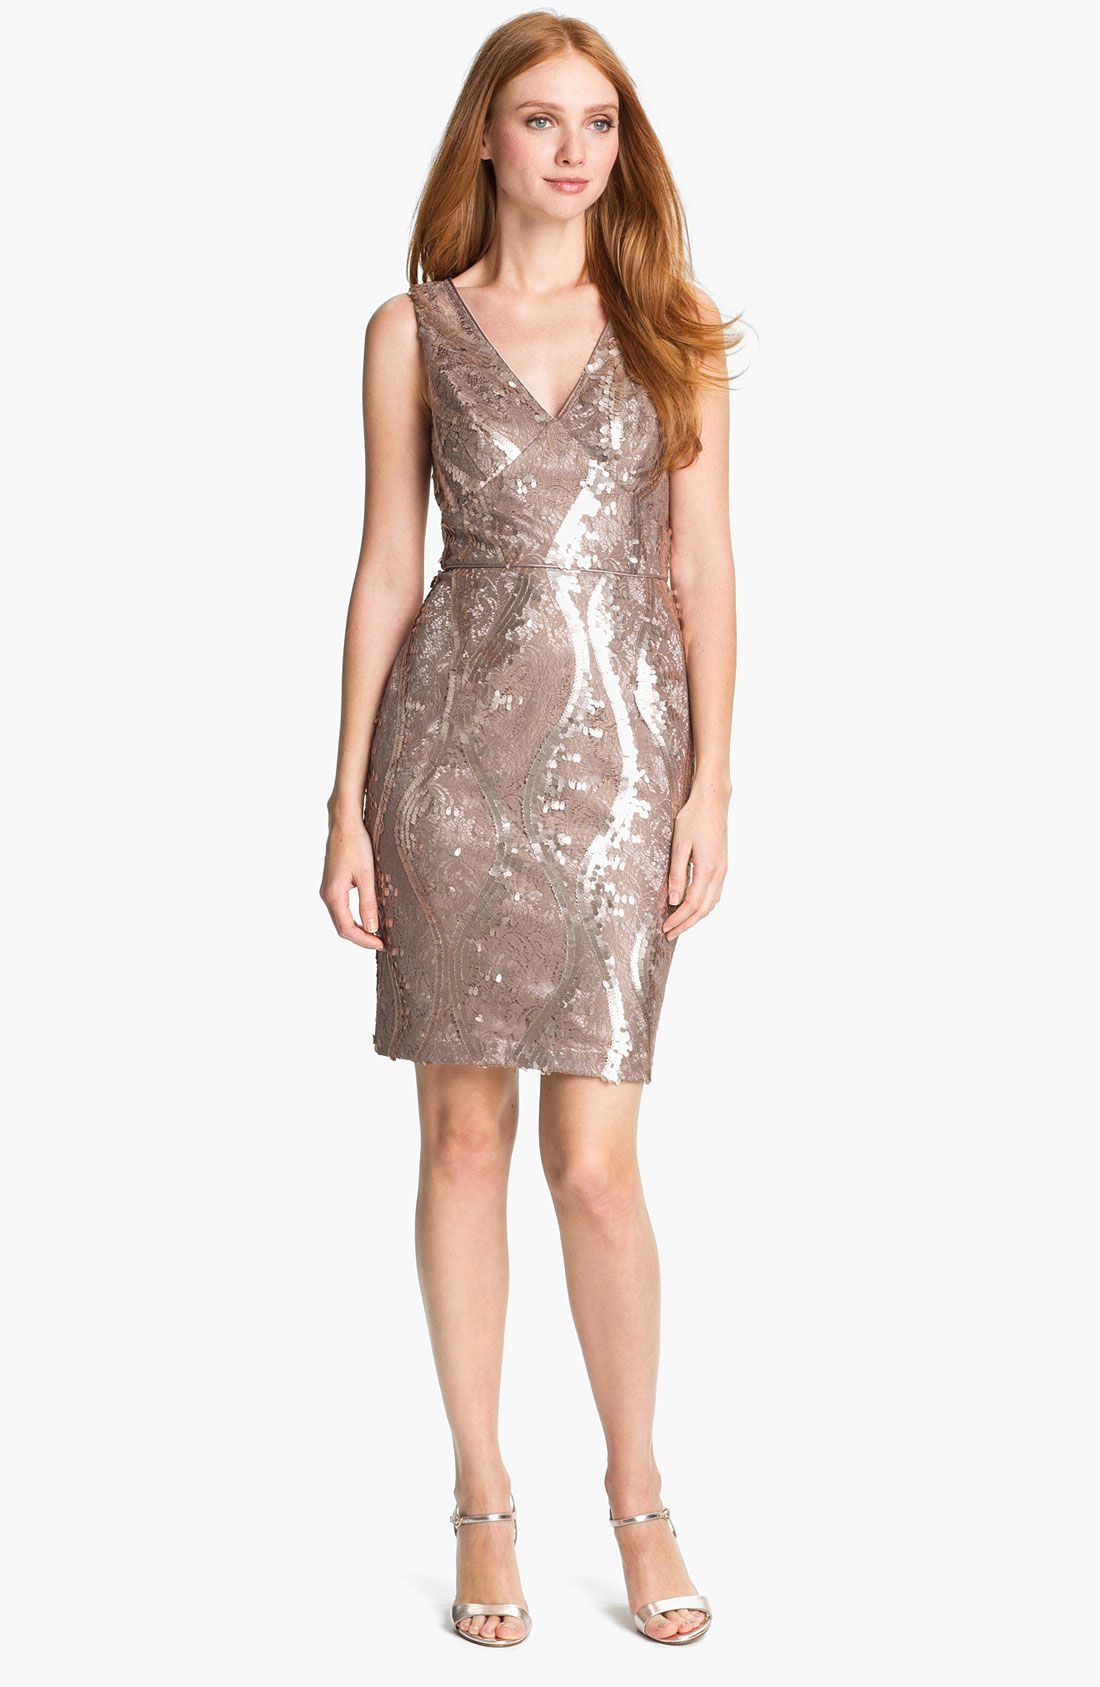 Adrianna Papell Embellished Lace Cocktail Dress | Nordstrom | My ...